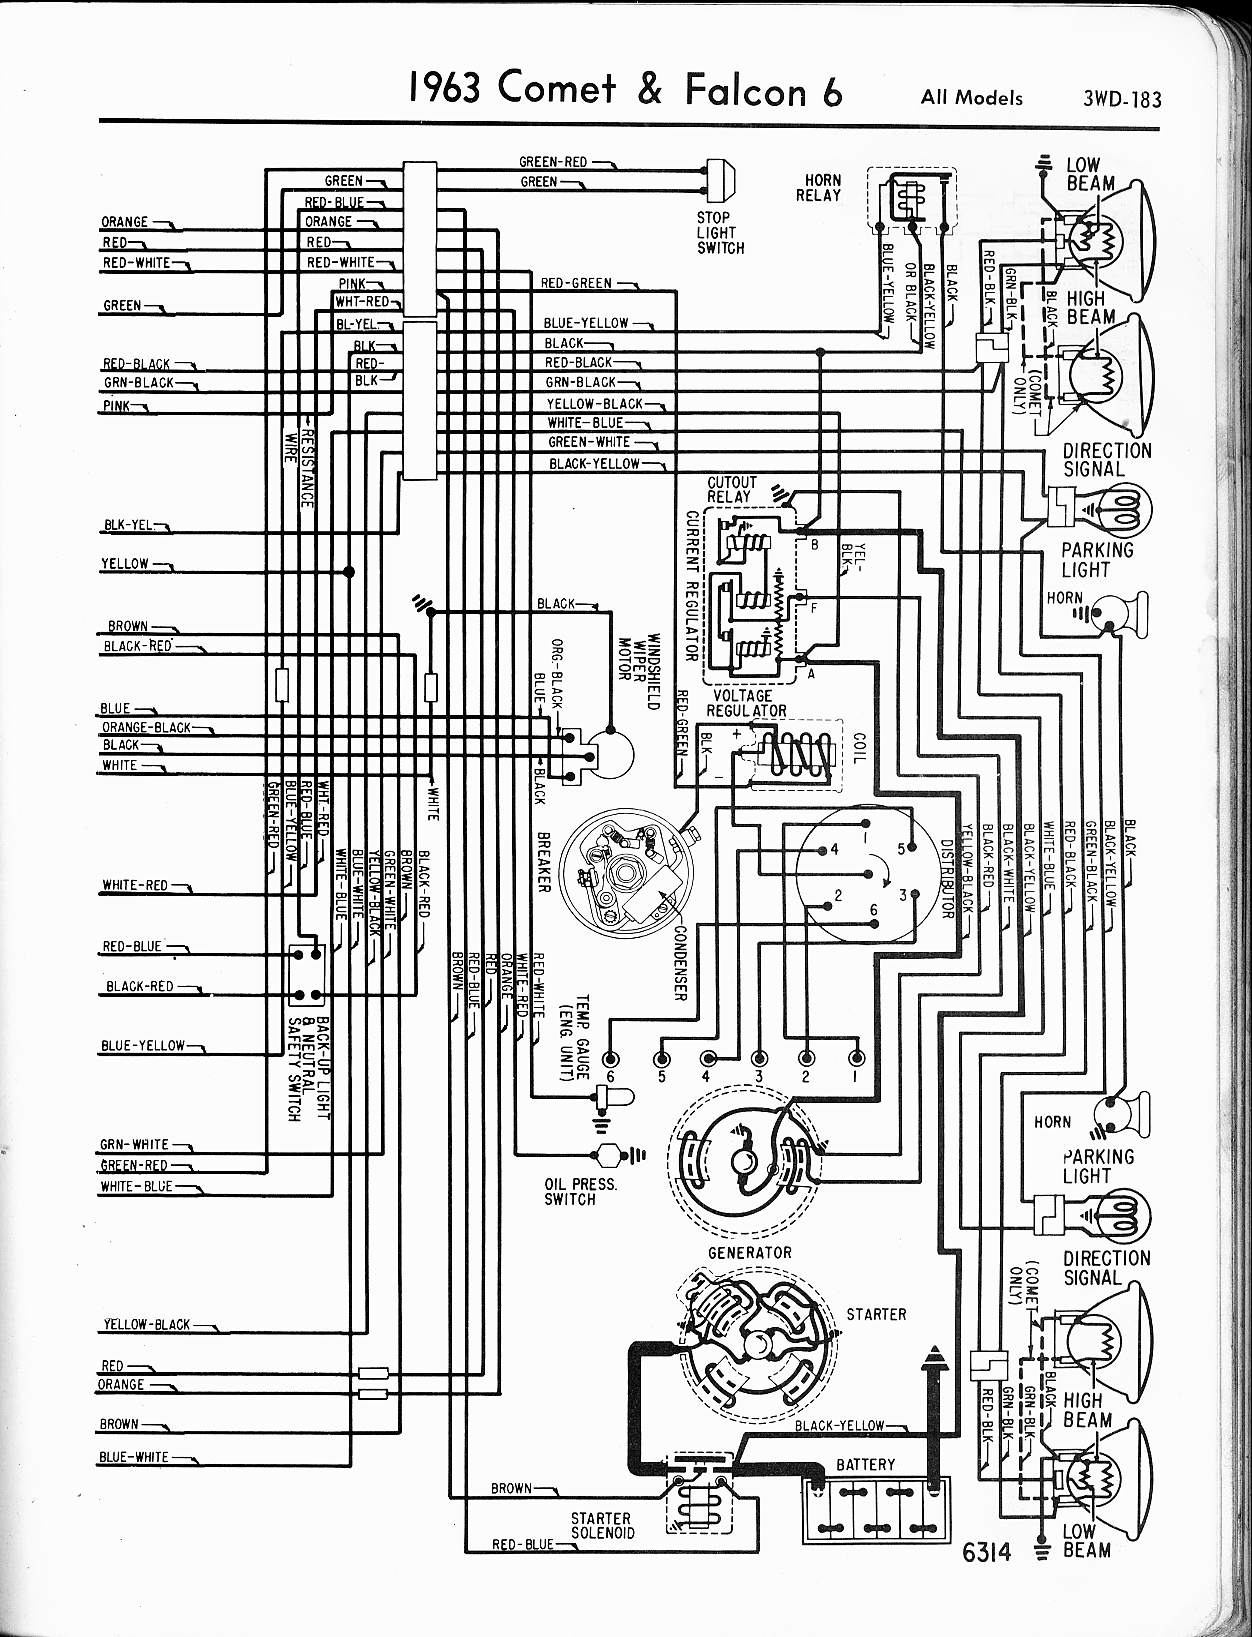 Install 1963 Falcon Horn Wiring: Wiring Diagram 1965 Ford Falcon Club Wagon At Nayabfun.com